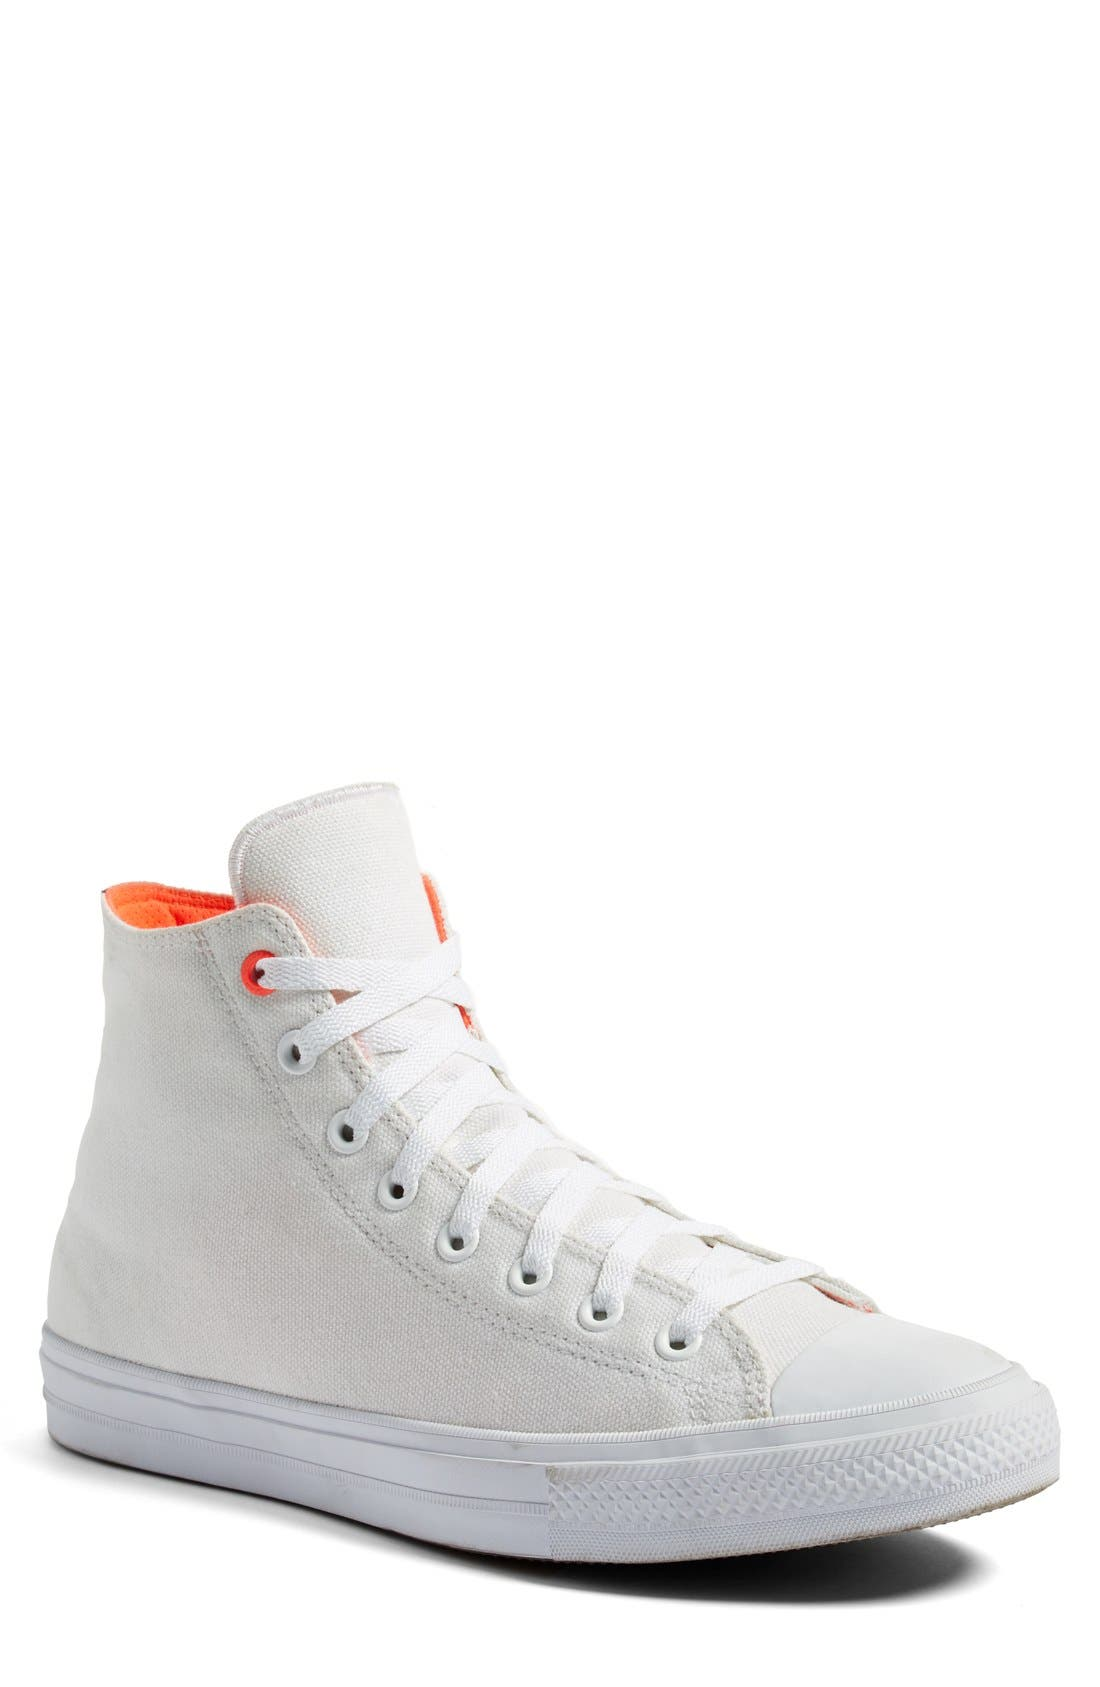 Alternate Image 1 Selected - Converse Chuck Taylor® All Star® II 'Shield' Water Repellent High Top Sneaker (Women)